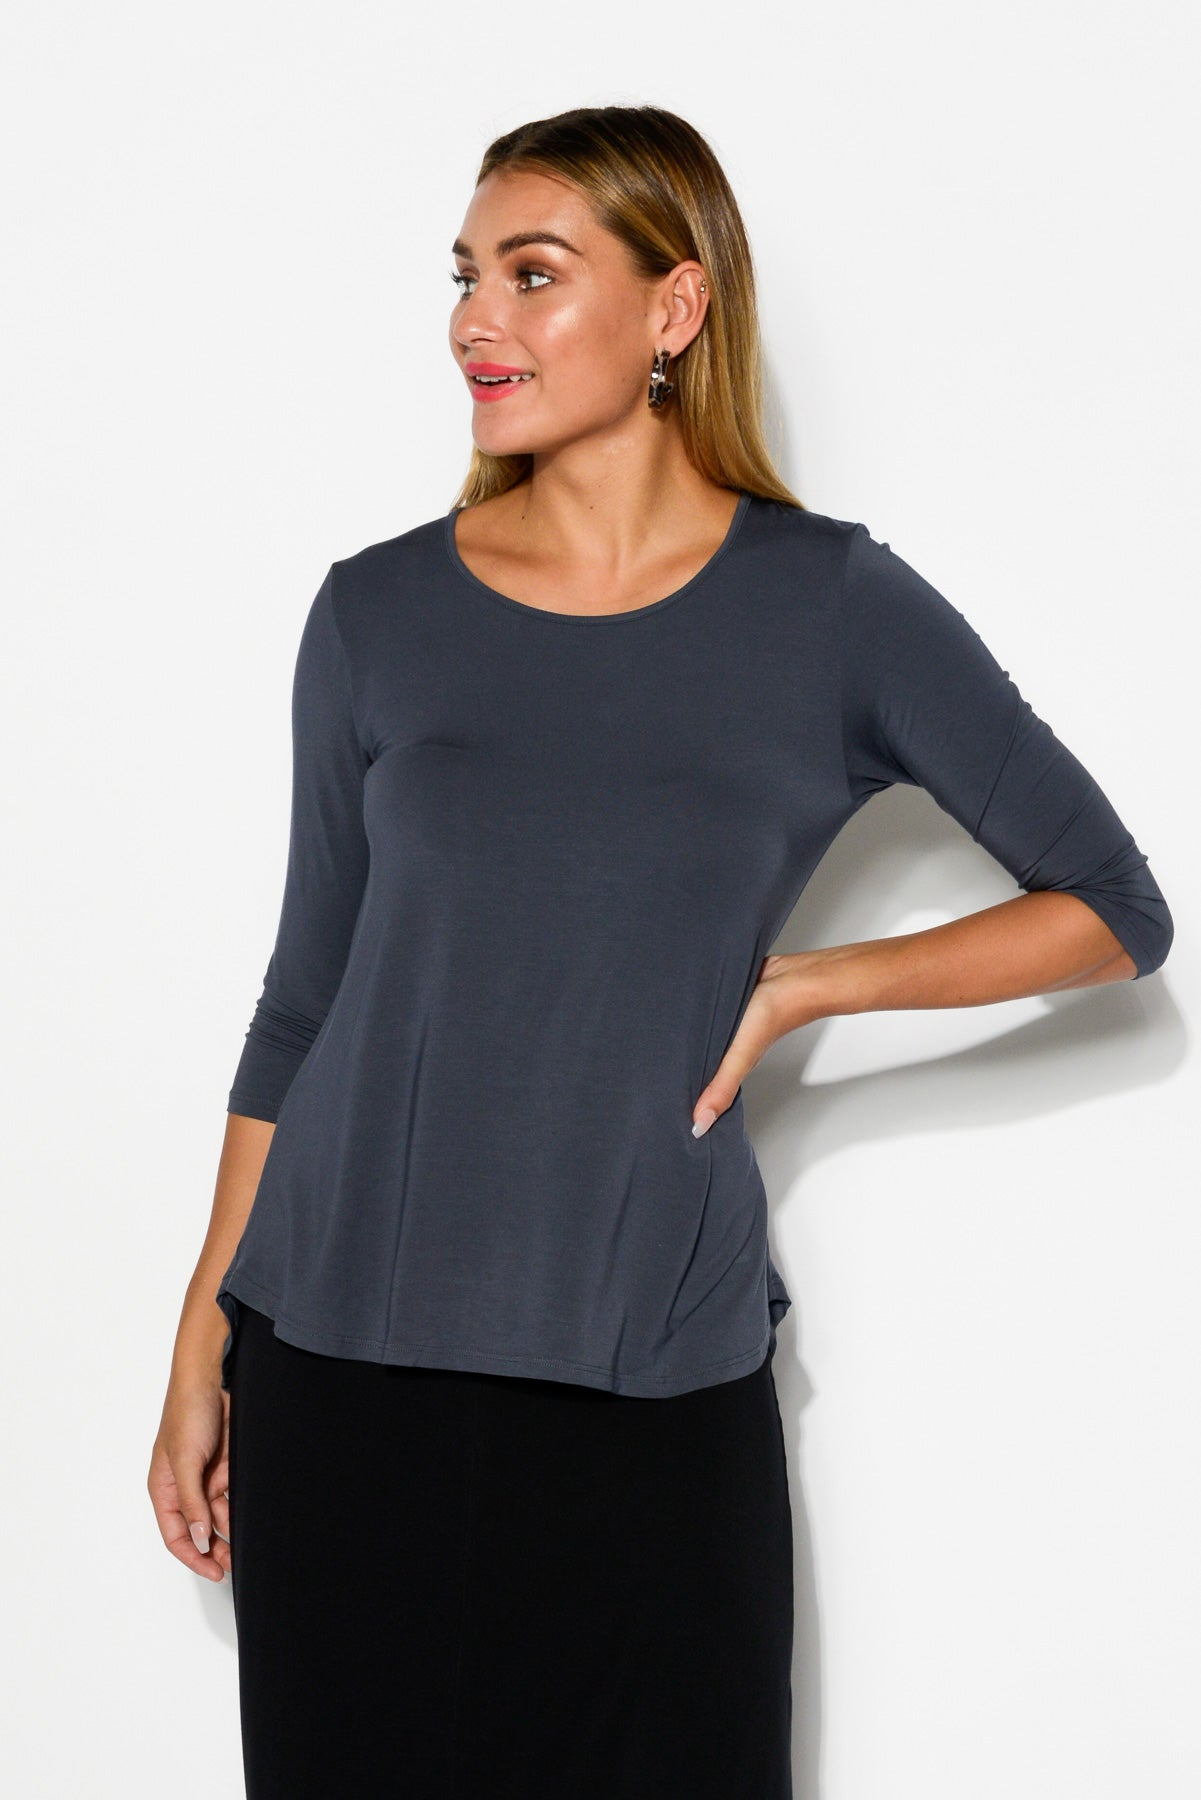 Slate Modal 3/4 Sleeve Hi Lo Top - Blue Bungalow